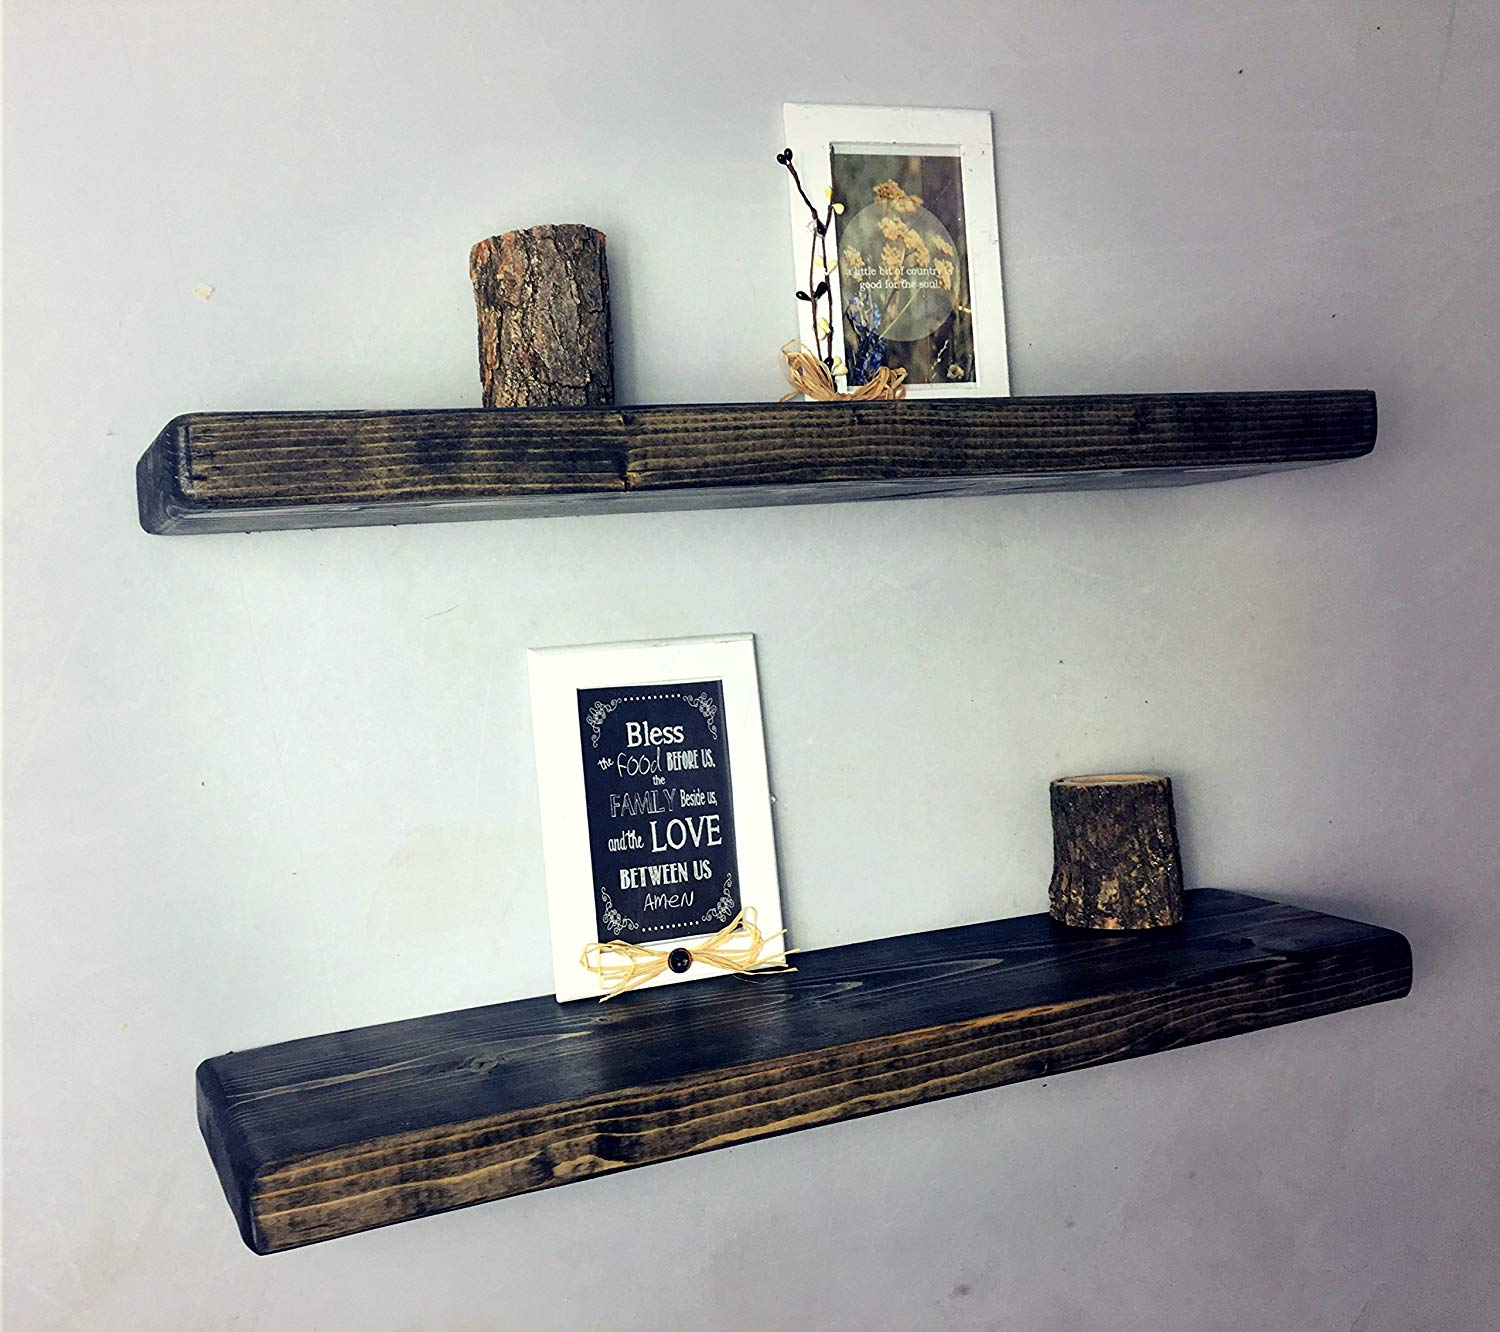 rustic black ebony floating shelves the falling tree gray handmade fireplace mantel shelf brackets kitchen cabinet open end hang ture wall without damage mirrored over sink